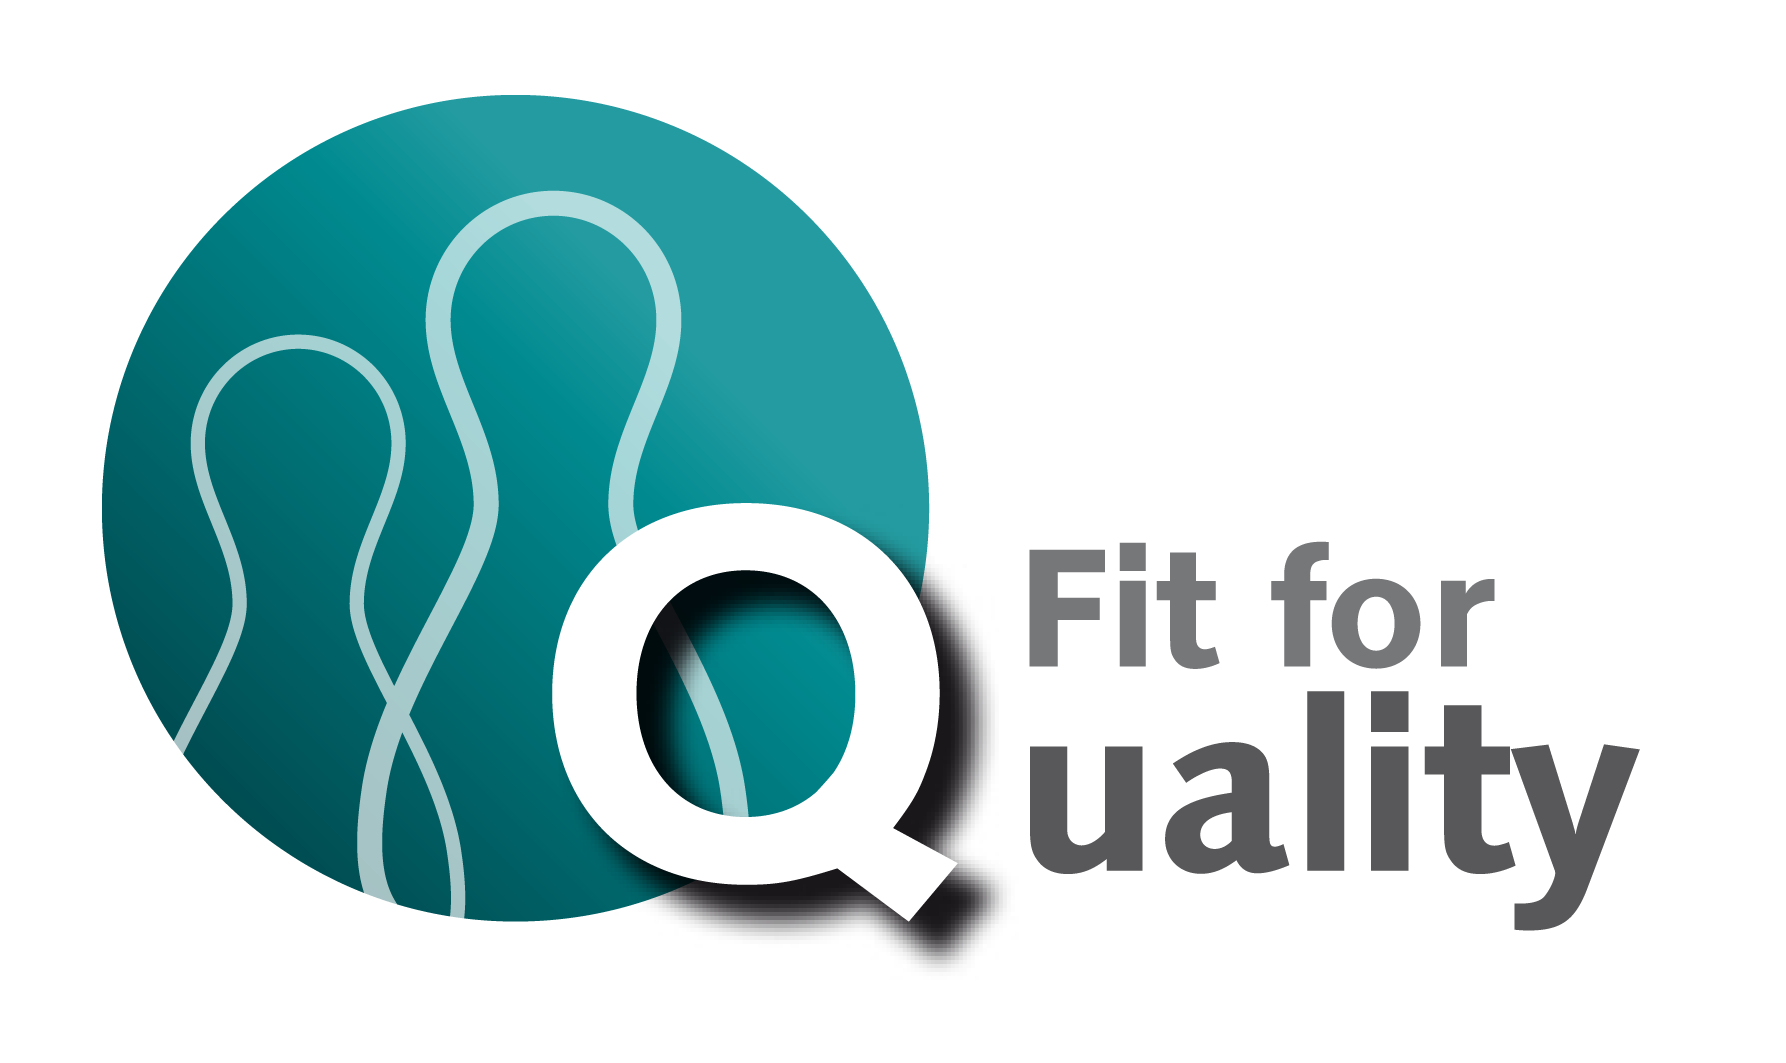 Fit For Quality logo